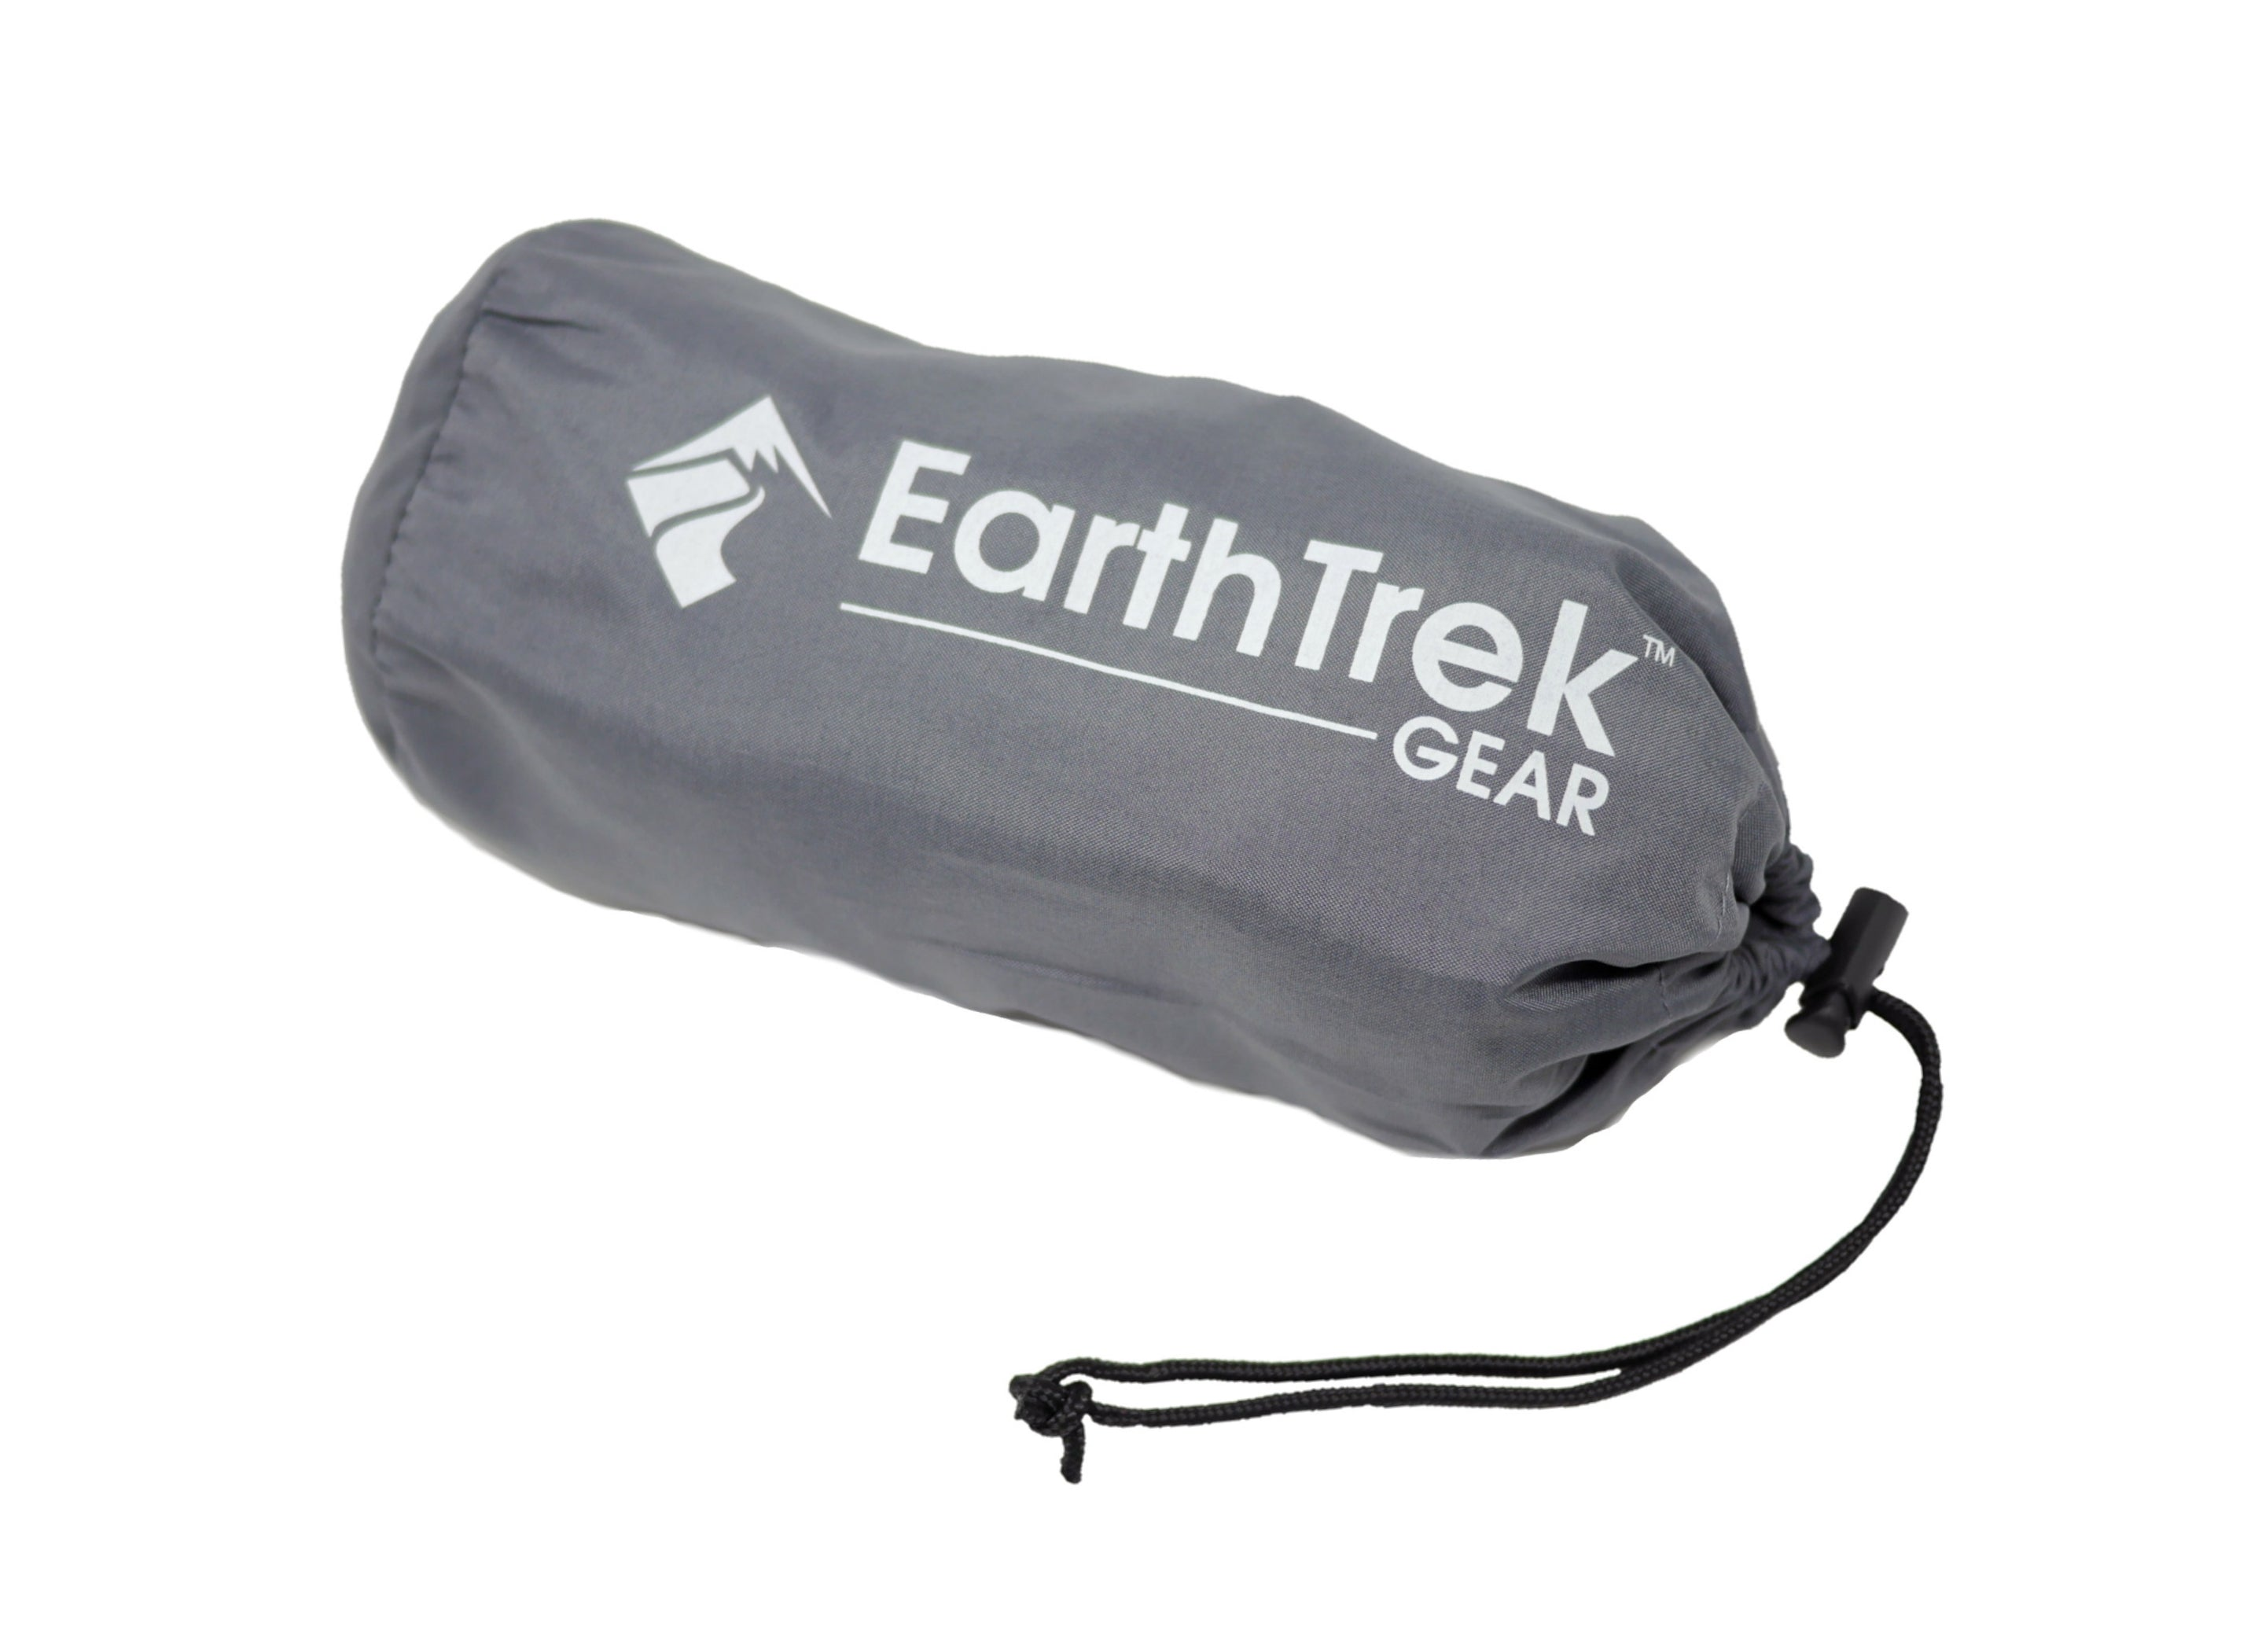 extra-large-comfy-travel-sleepingbag-liner-stuff-sack